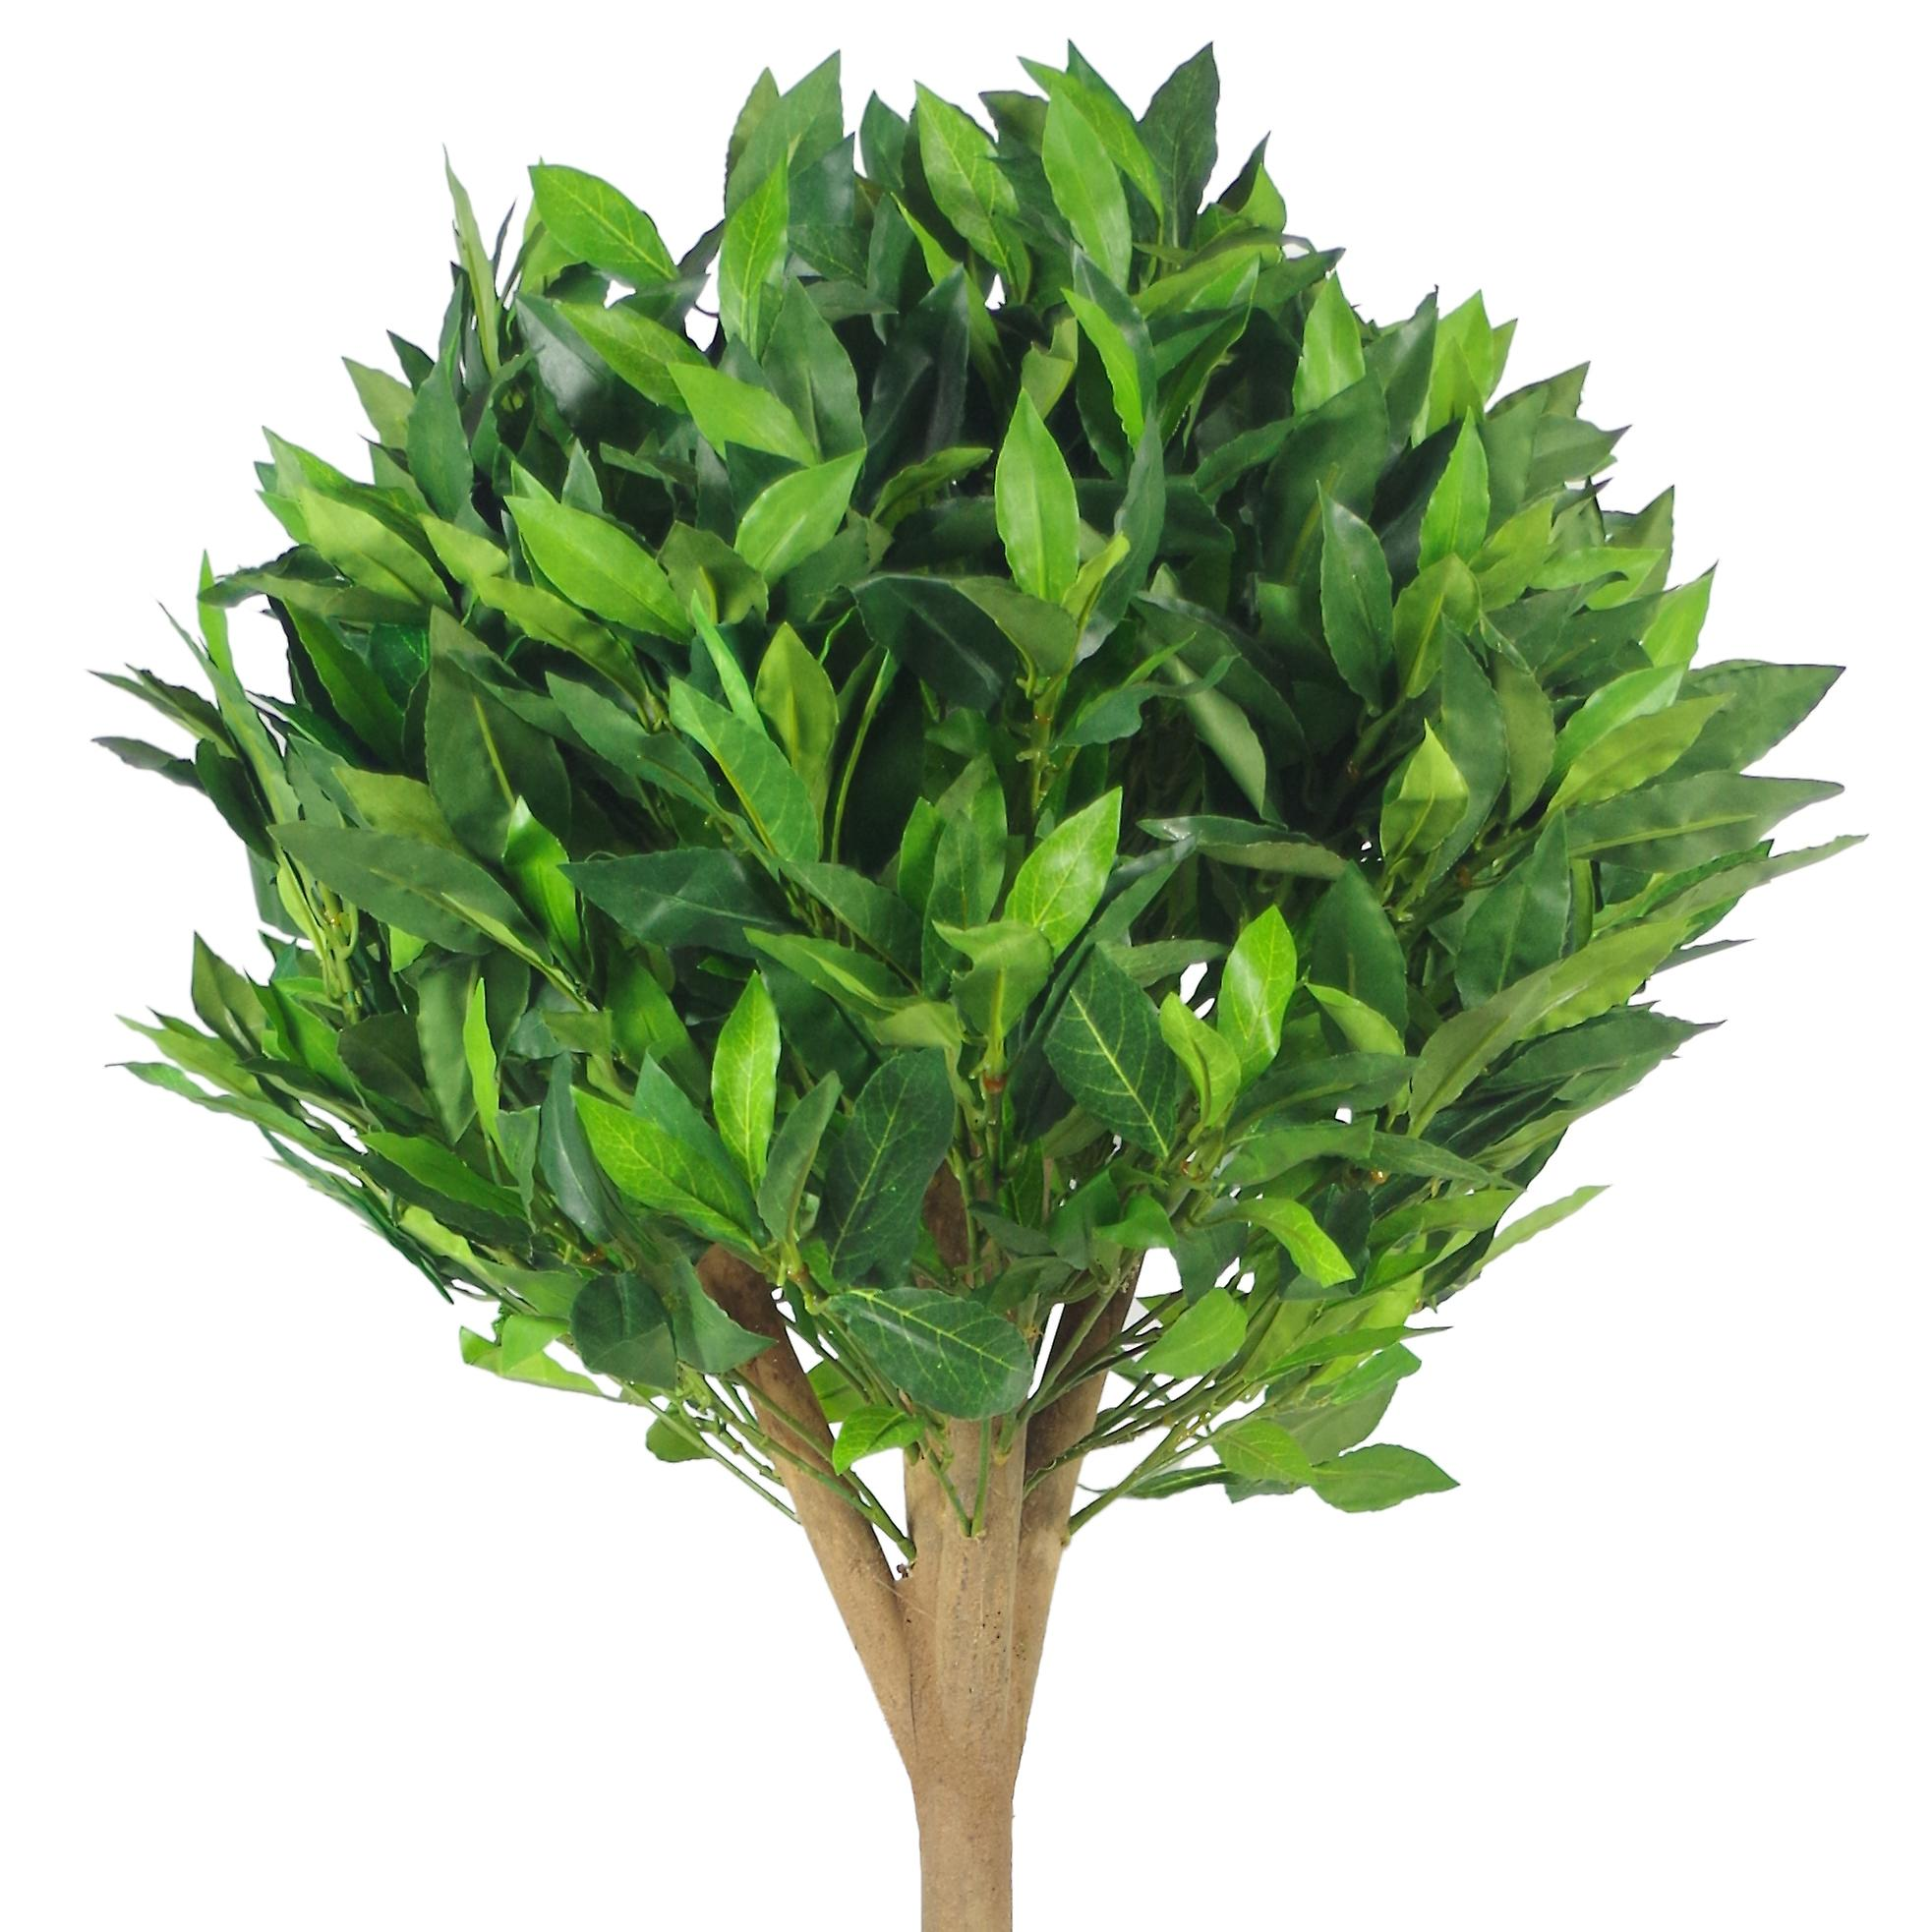 Pair of 120cm (4ft) Tall Luxury Deluxe Artificial Bay Leaf Laurel Trees Topiary Ball